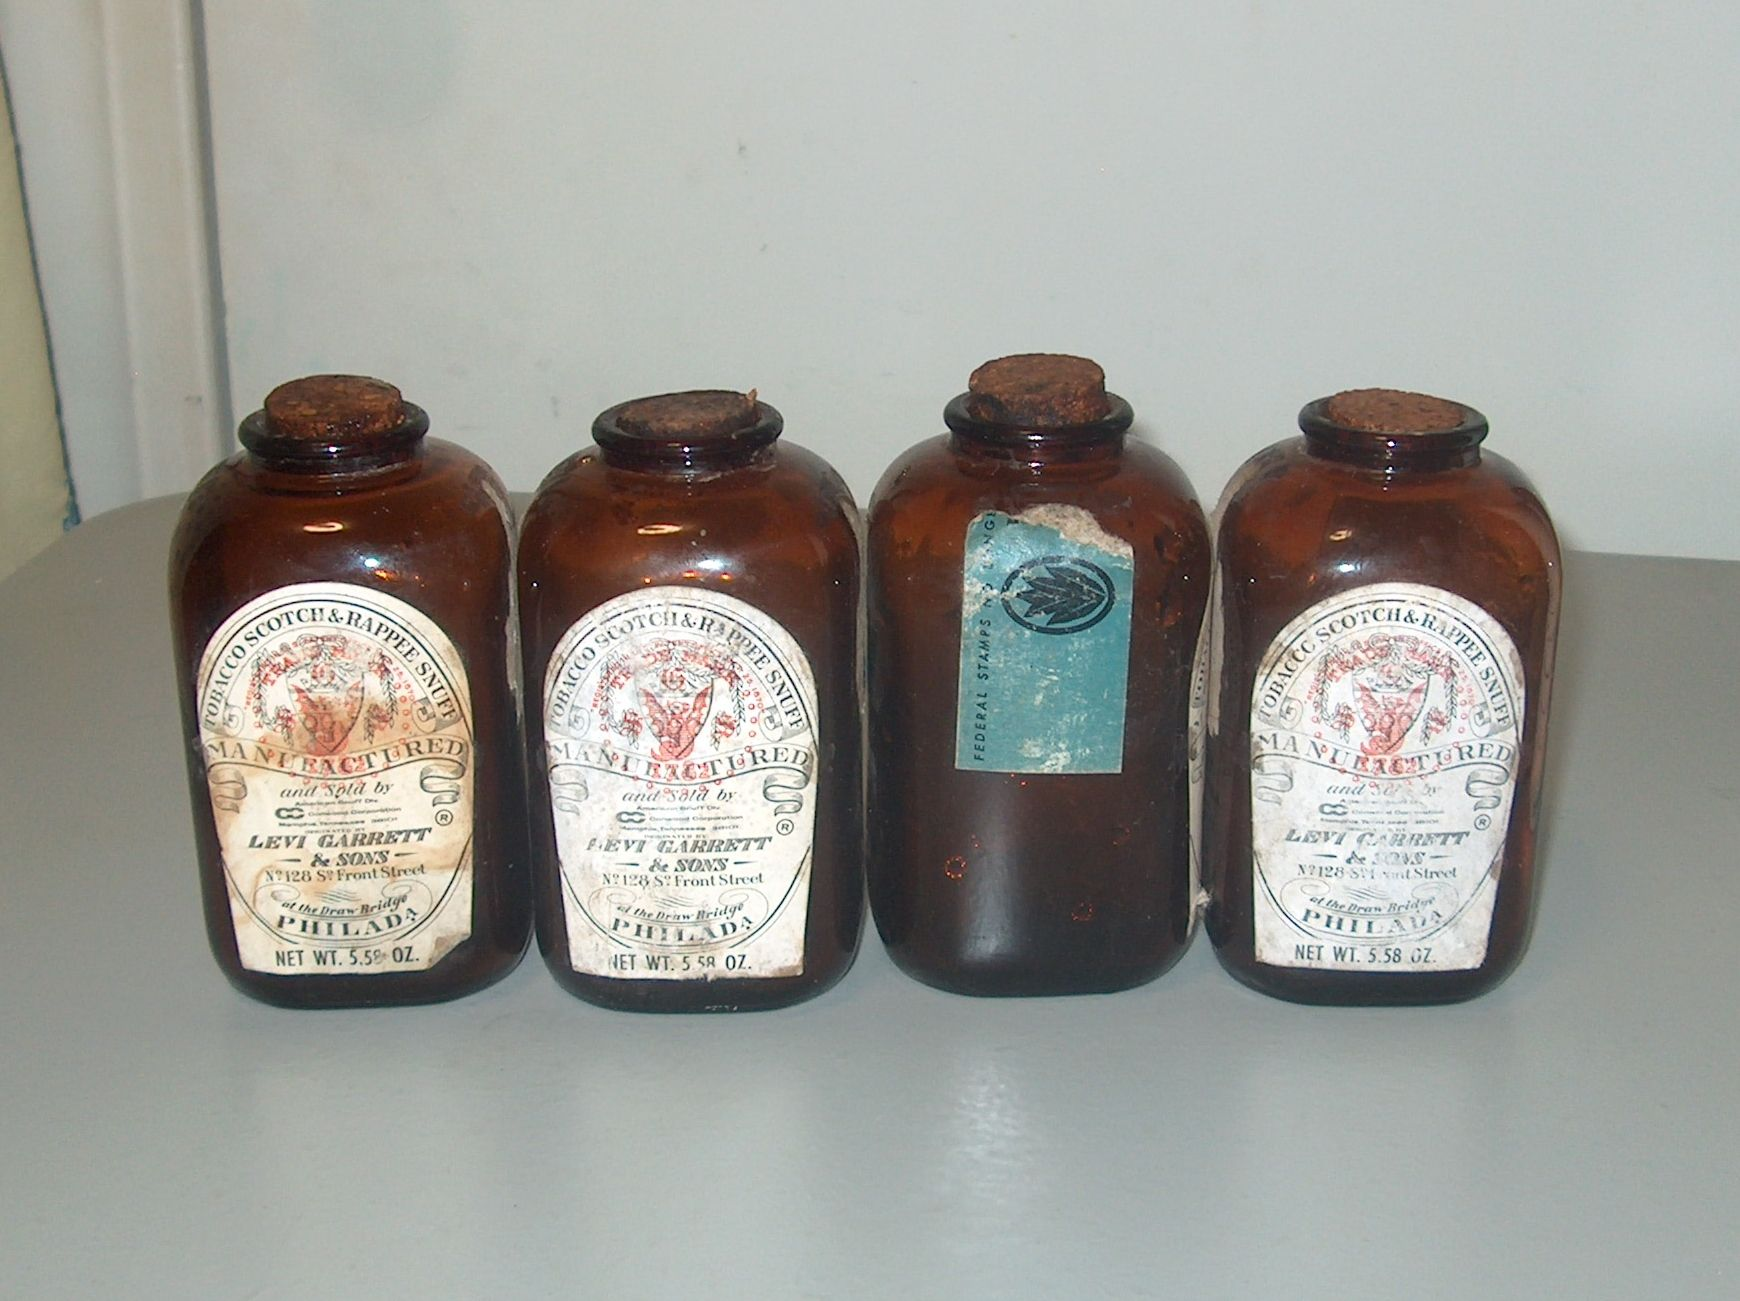 Vintage Levi Garrett & Sons Snuff Bottles with Labels and Corks-1 Has Part of the Government Stamp-$25